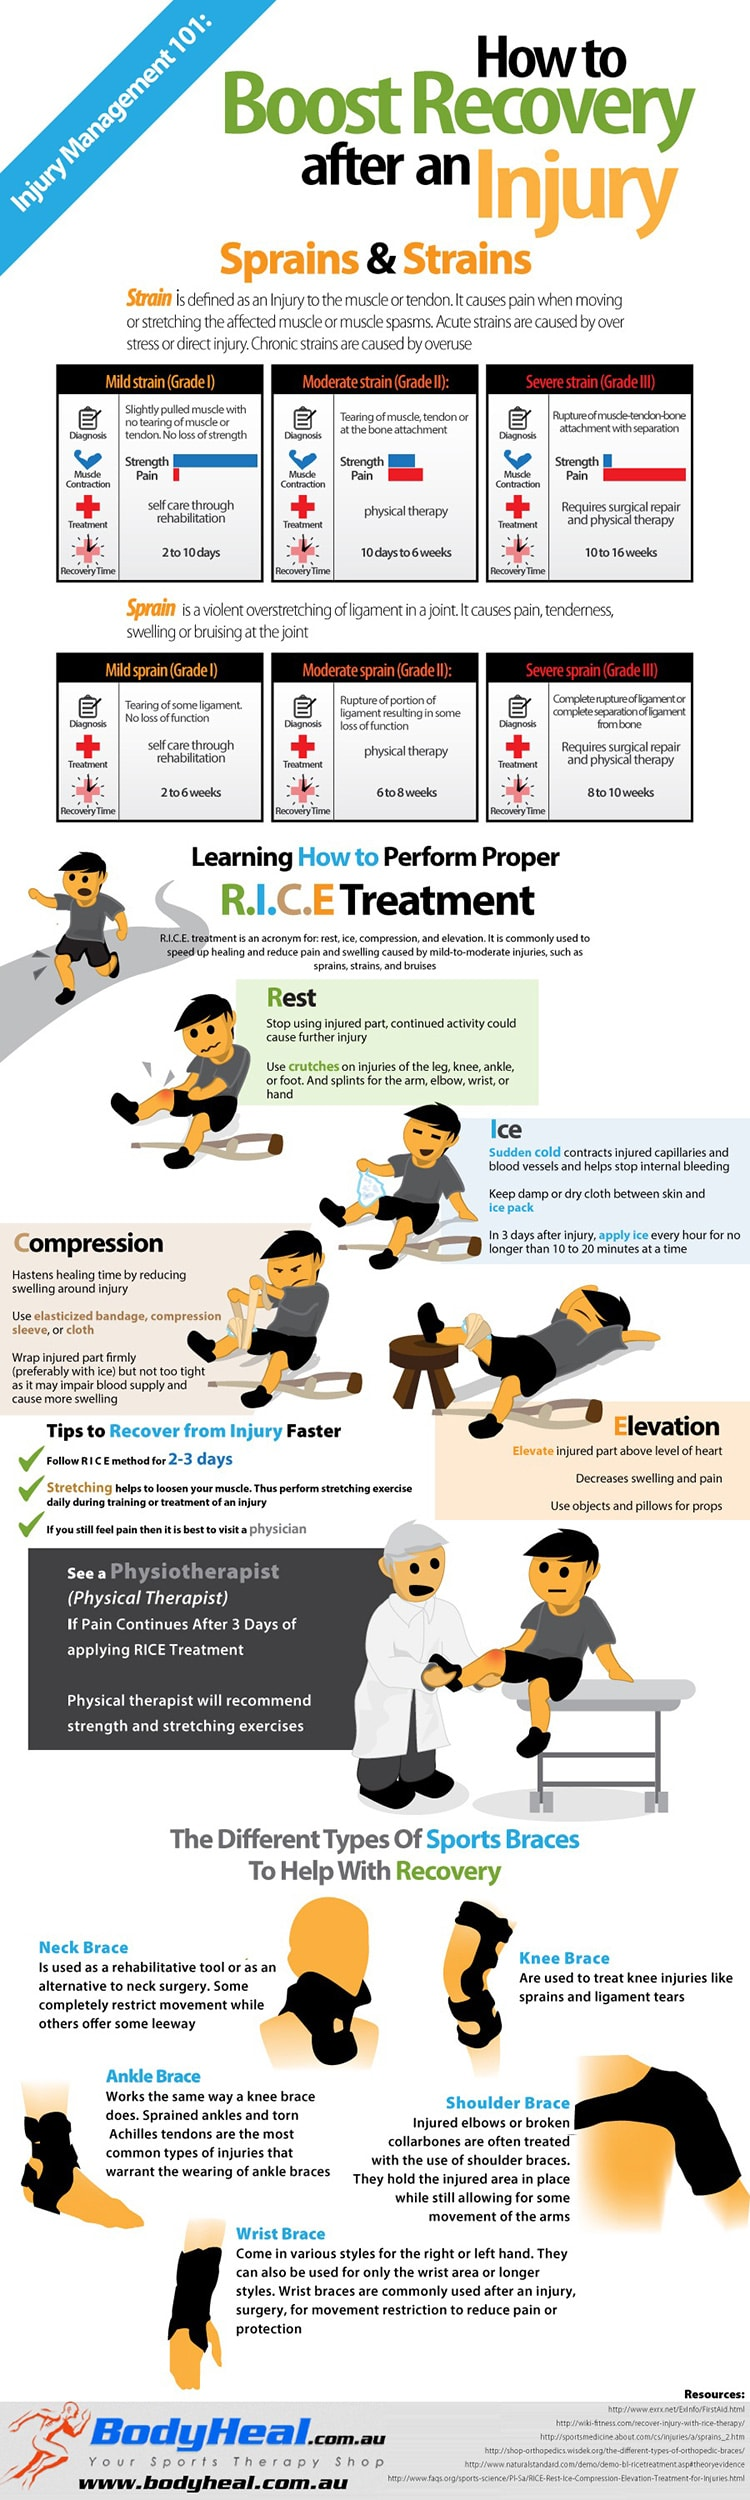 Infographic: How To Boost Recovery From A Sports Injury With R.I.C.E. Treatment